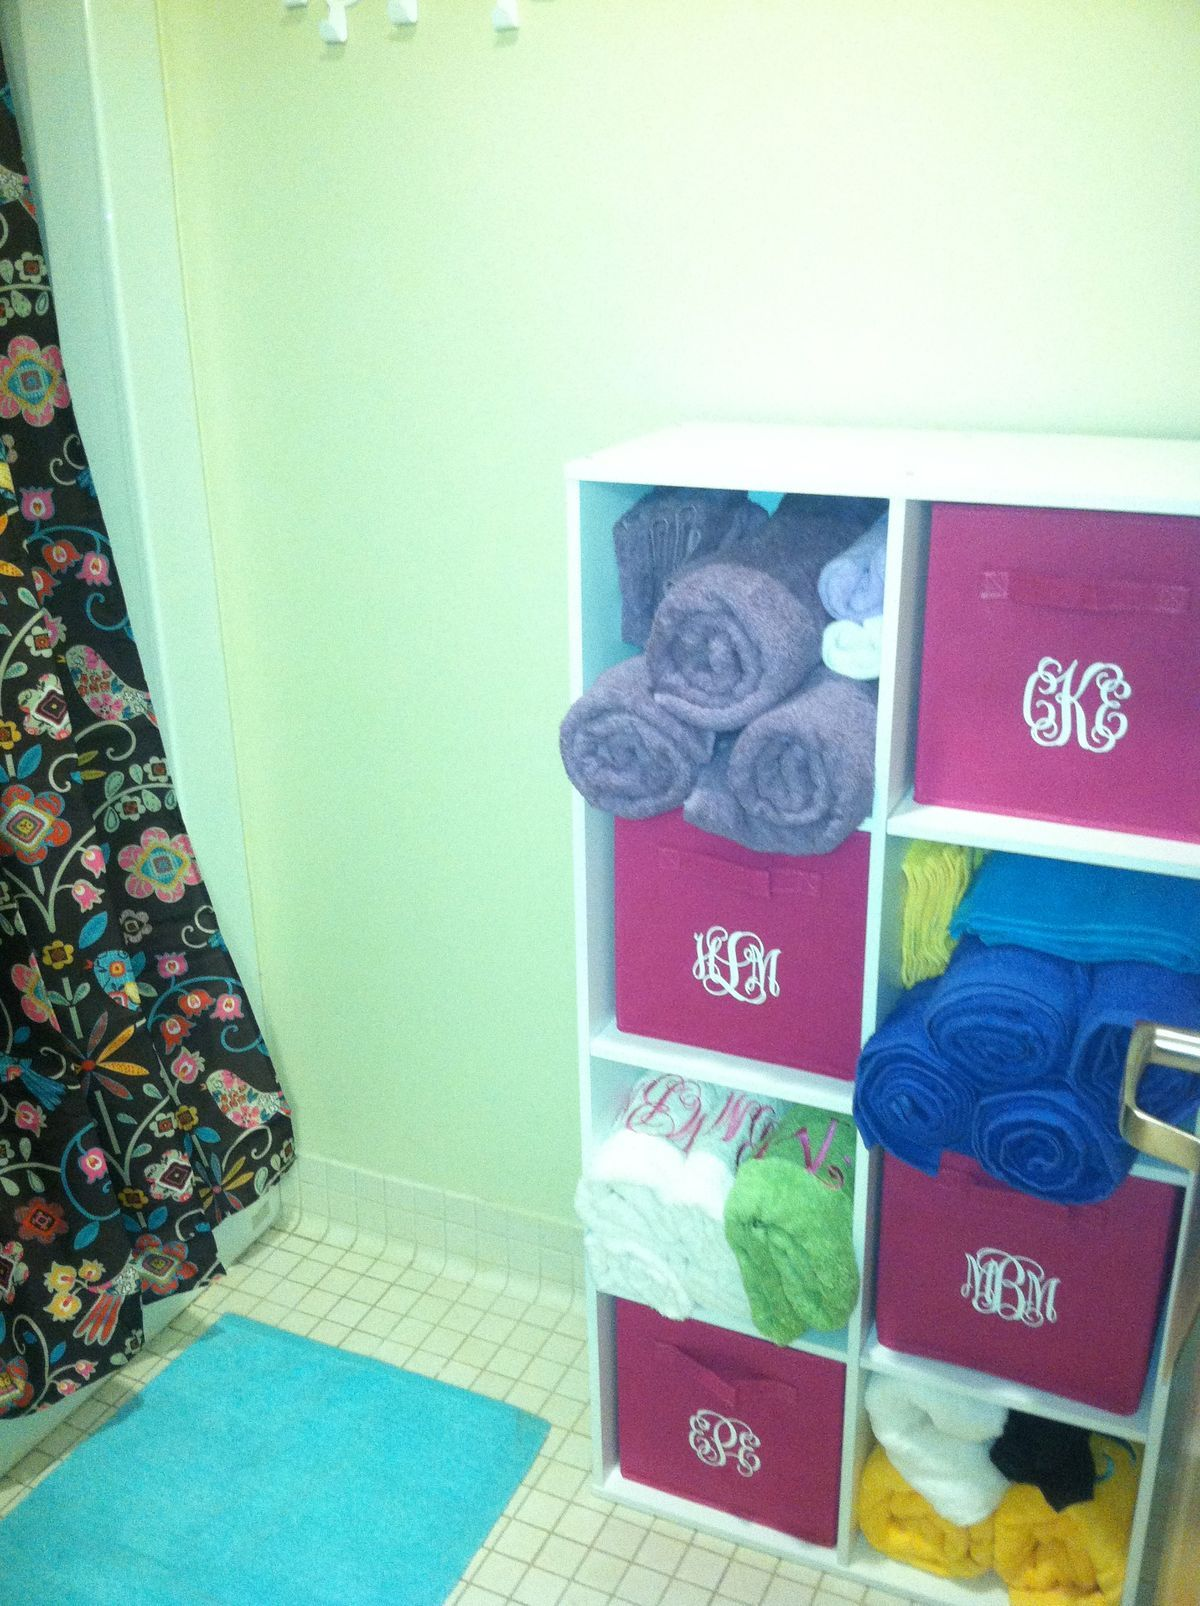 Dorm Shower Room It Looks Better In Person Bad Quality Picture Lolz This Would Be Cool For A Family Bathroom Too